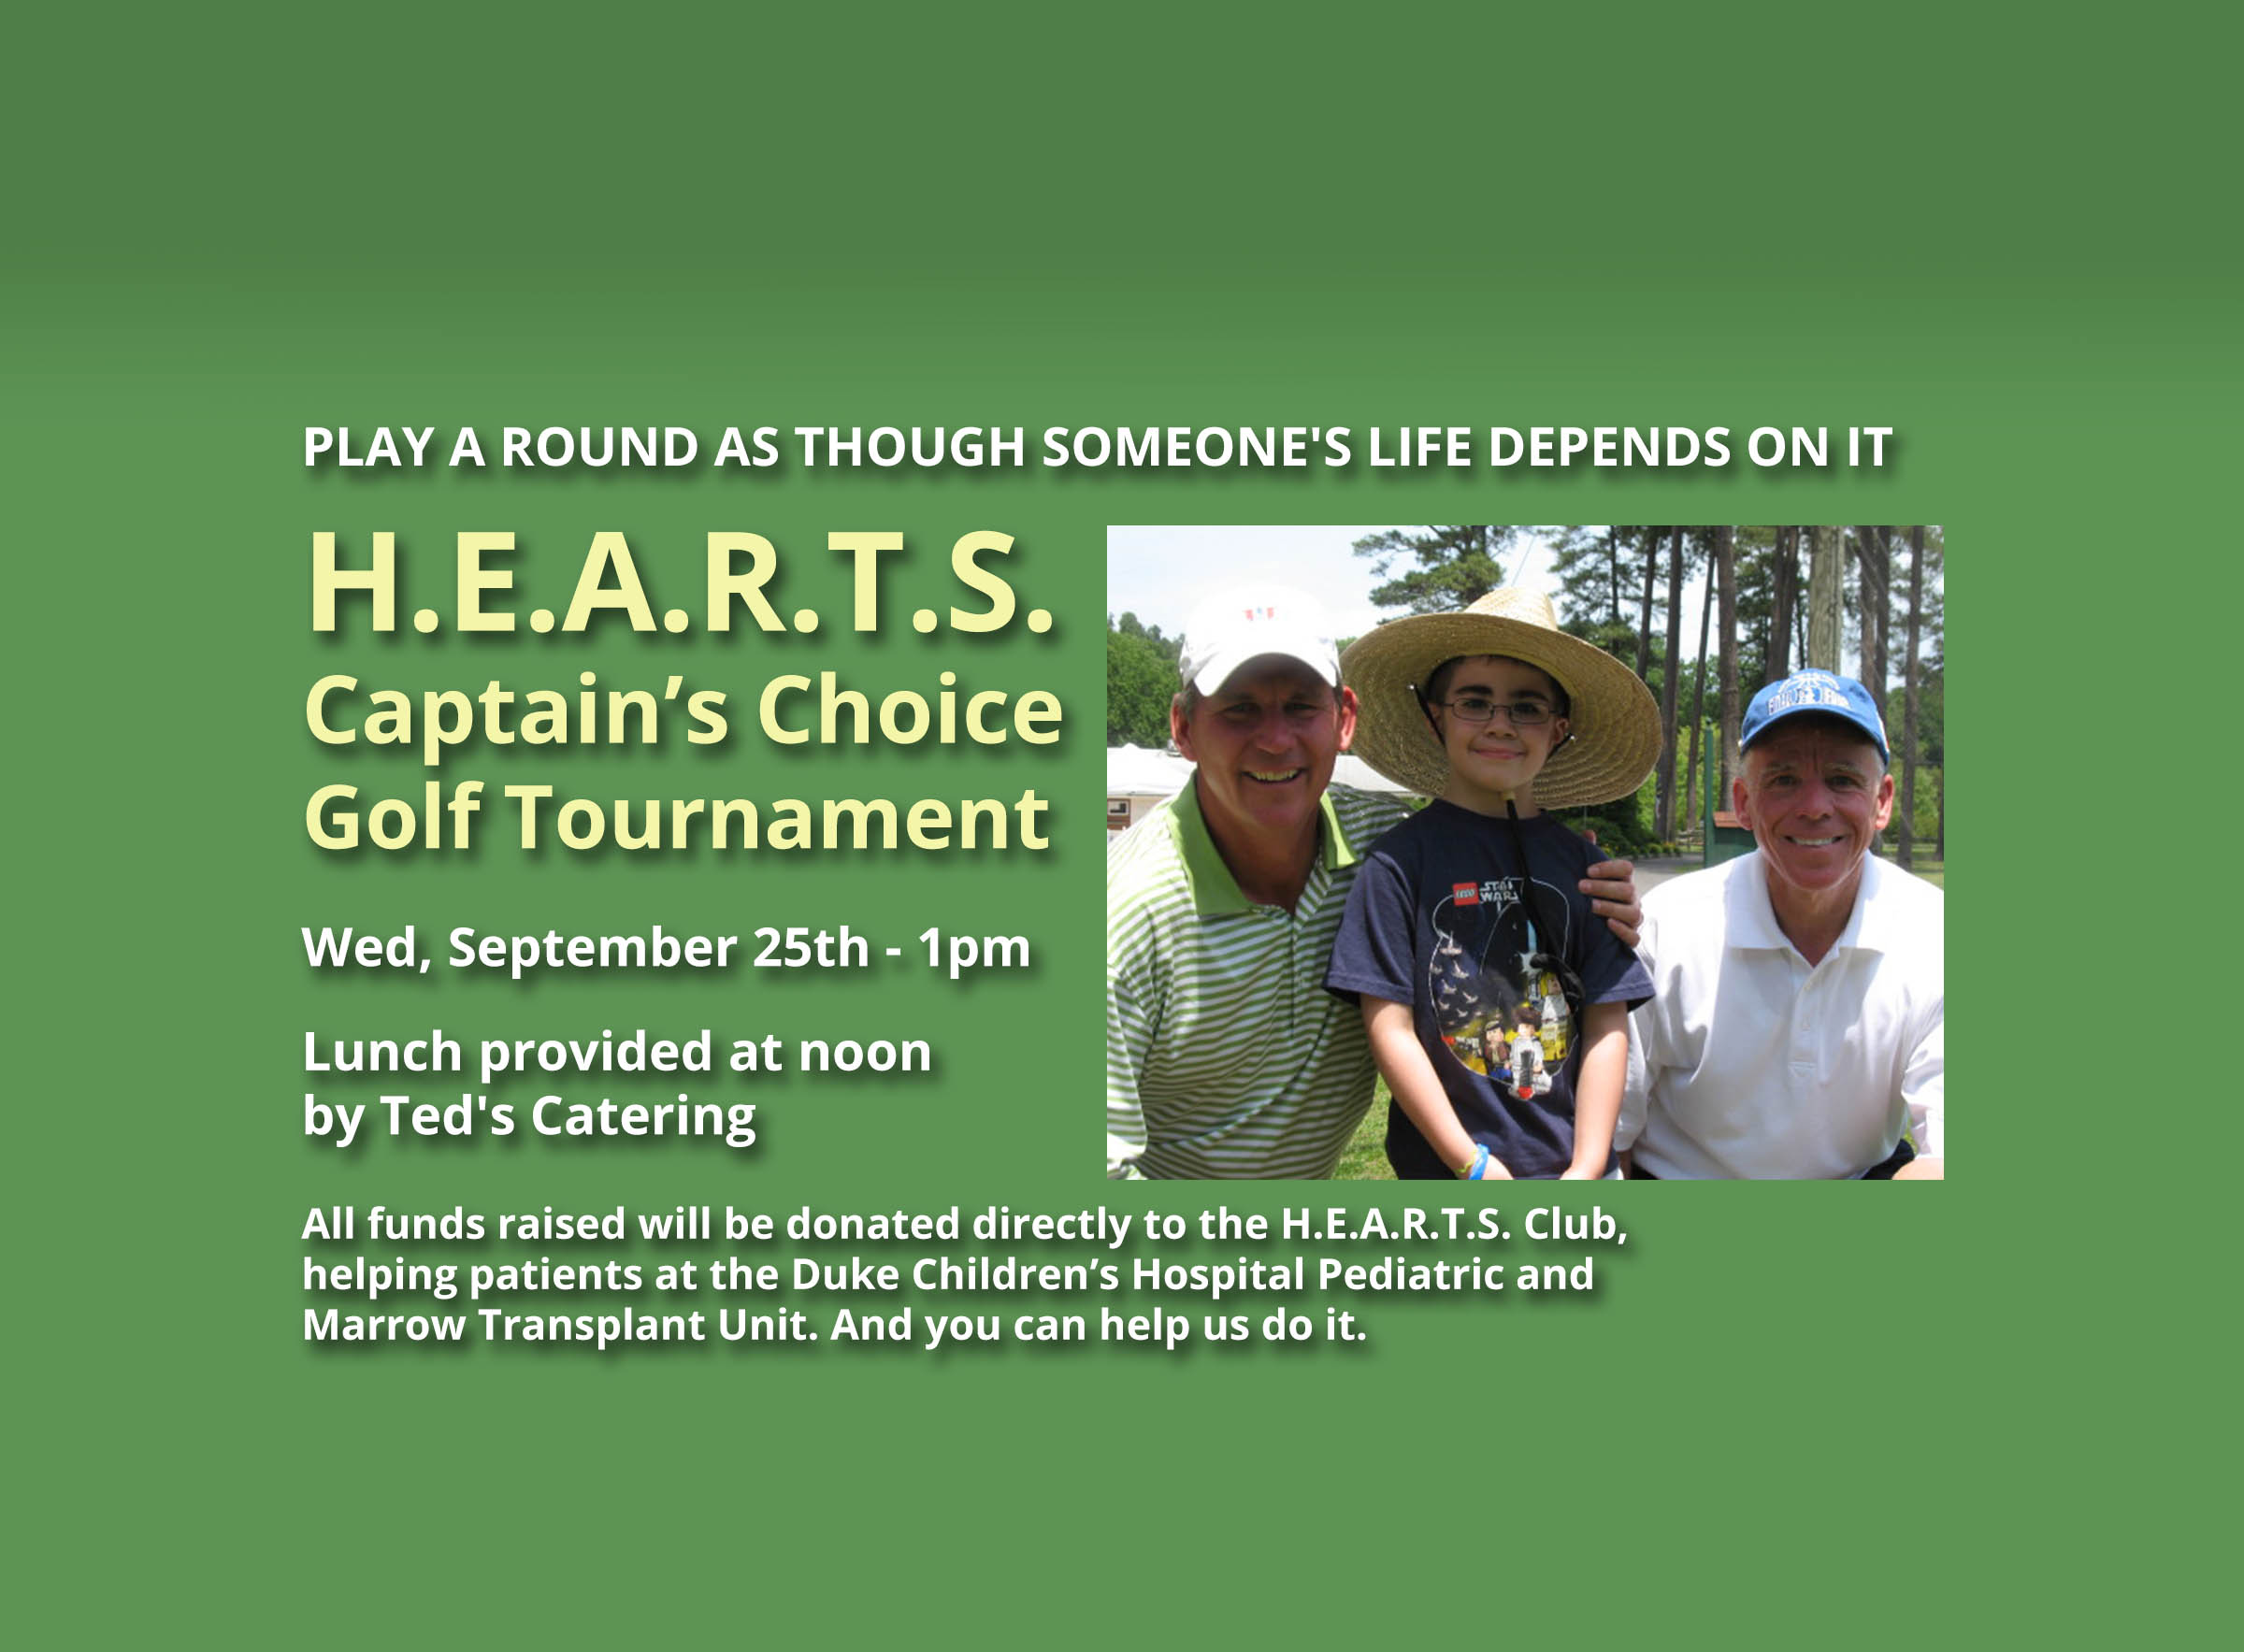 HEARTS Golf Tournament Wed, Sept 25th